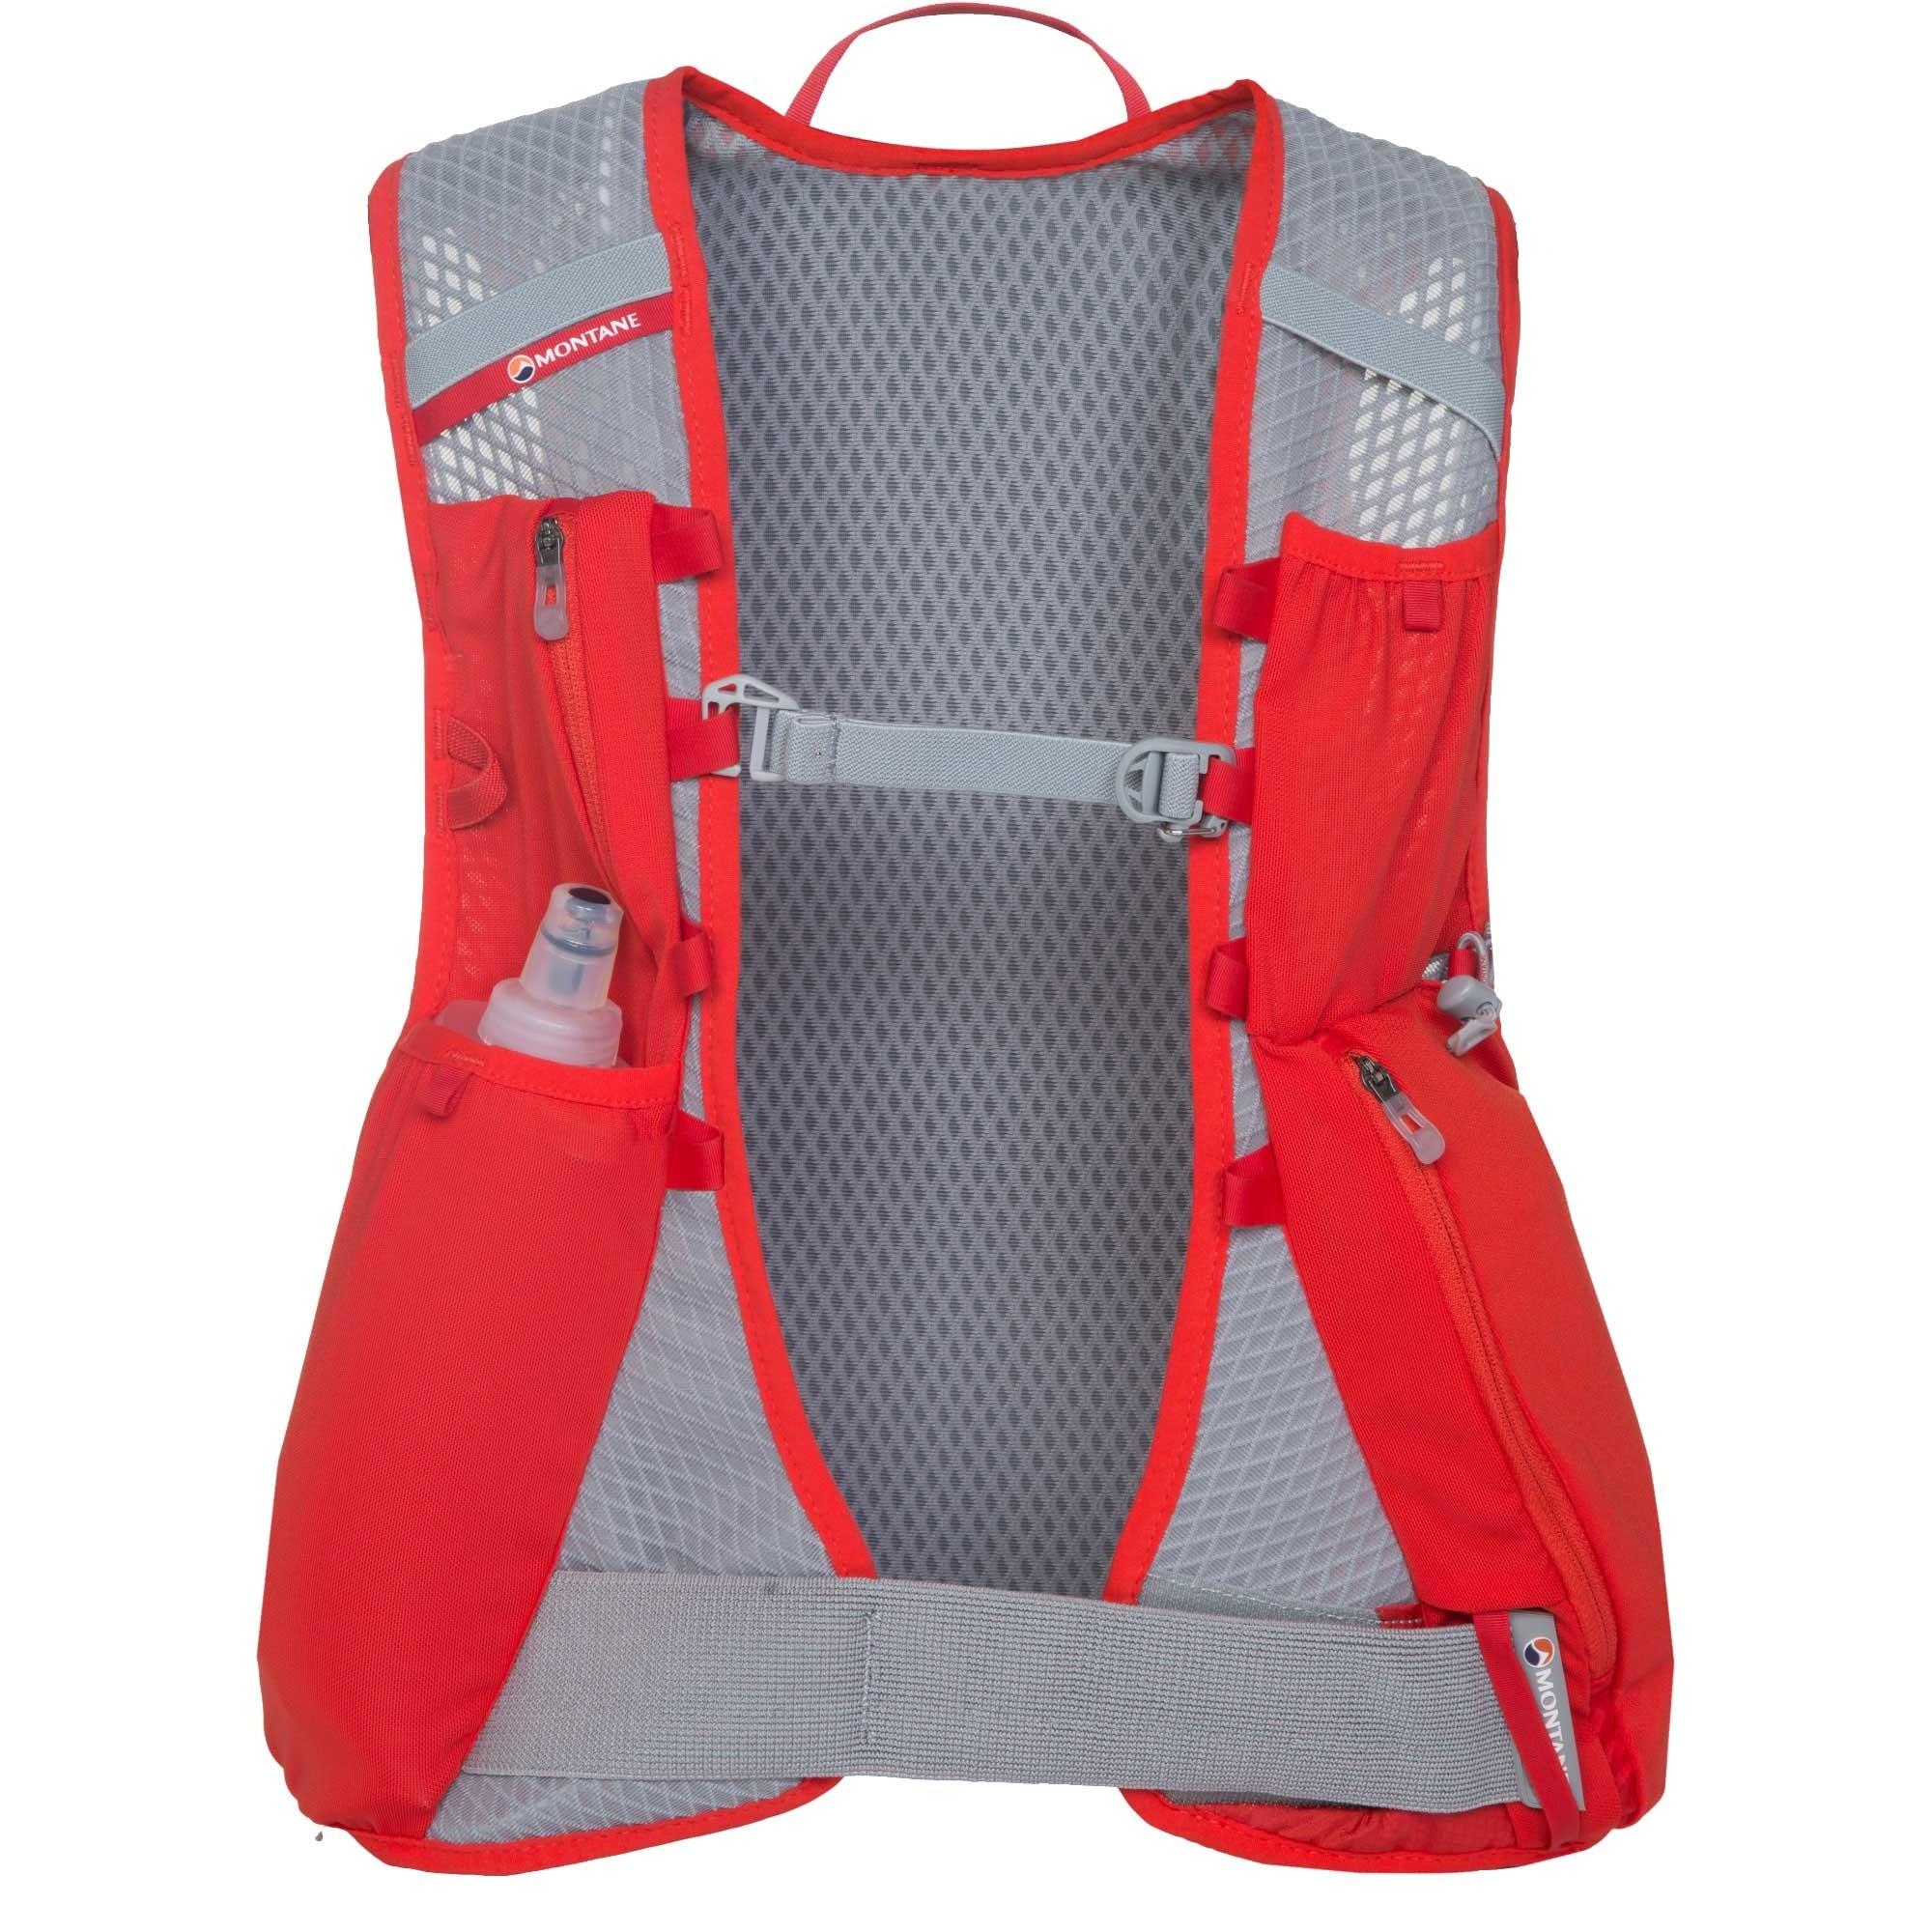 Montane VIA Jaws 10 Trail Running Speedpack - Front - Flag Red